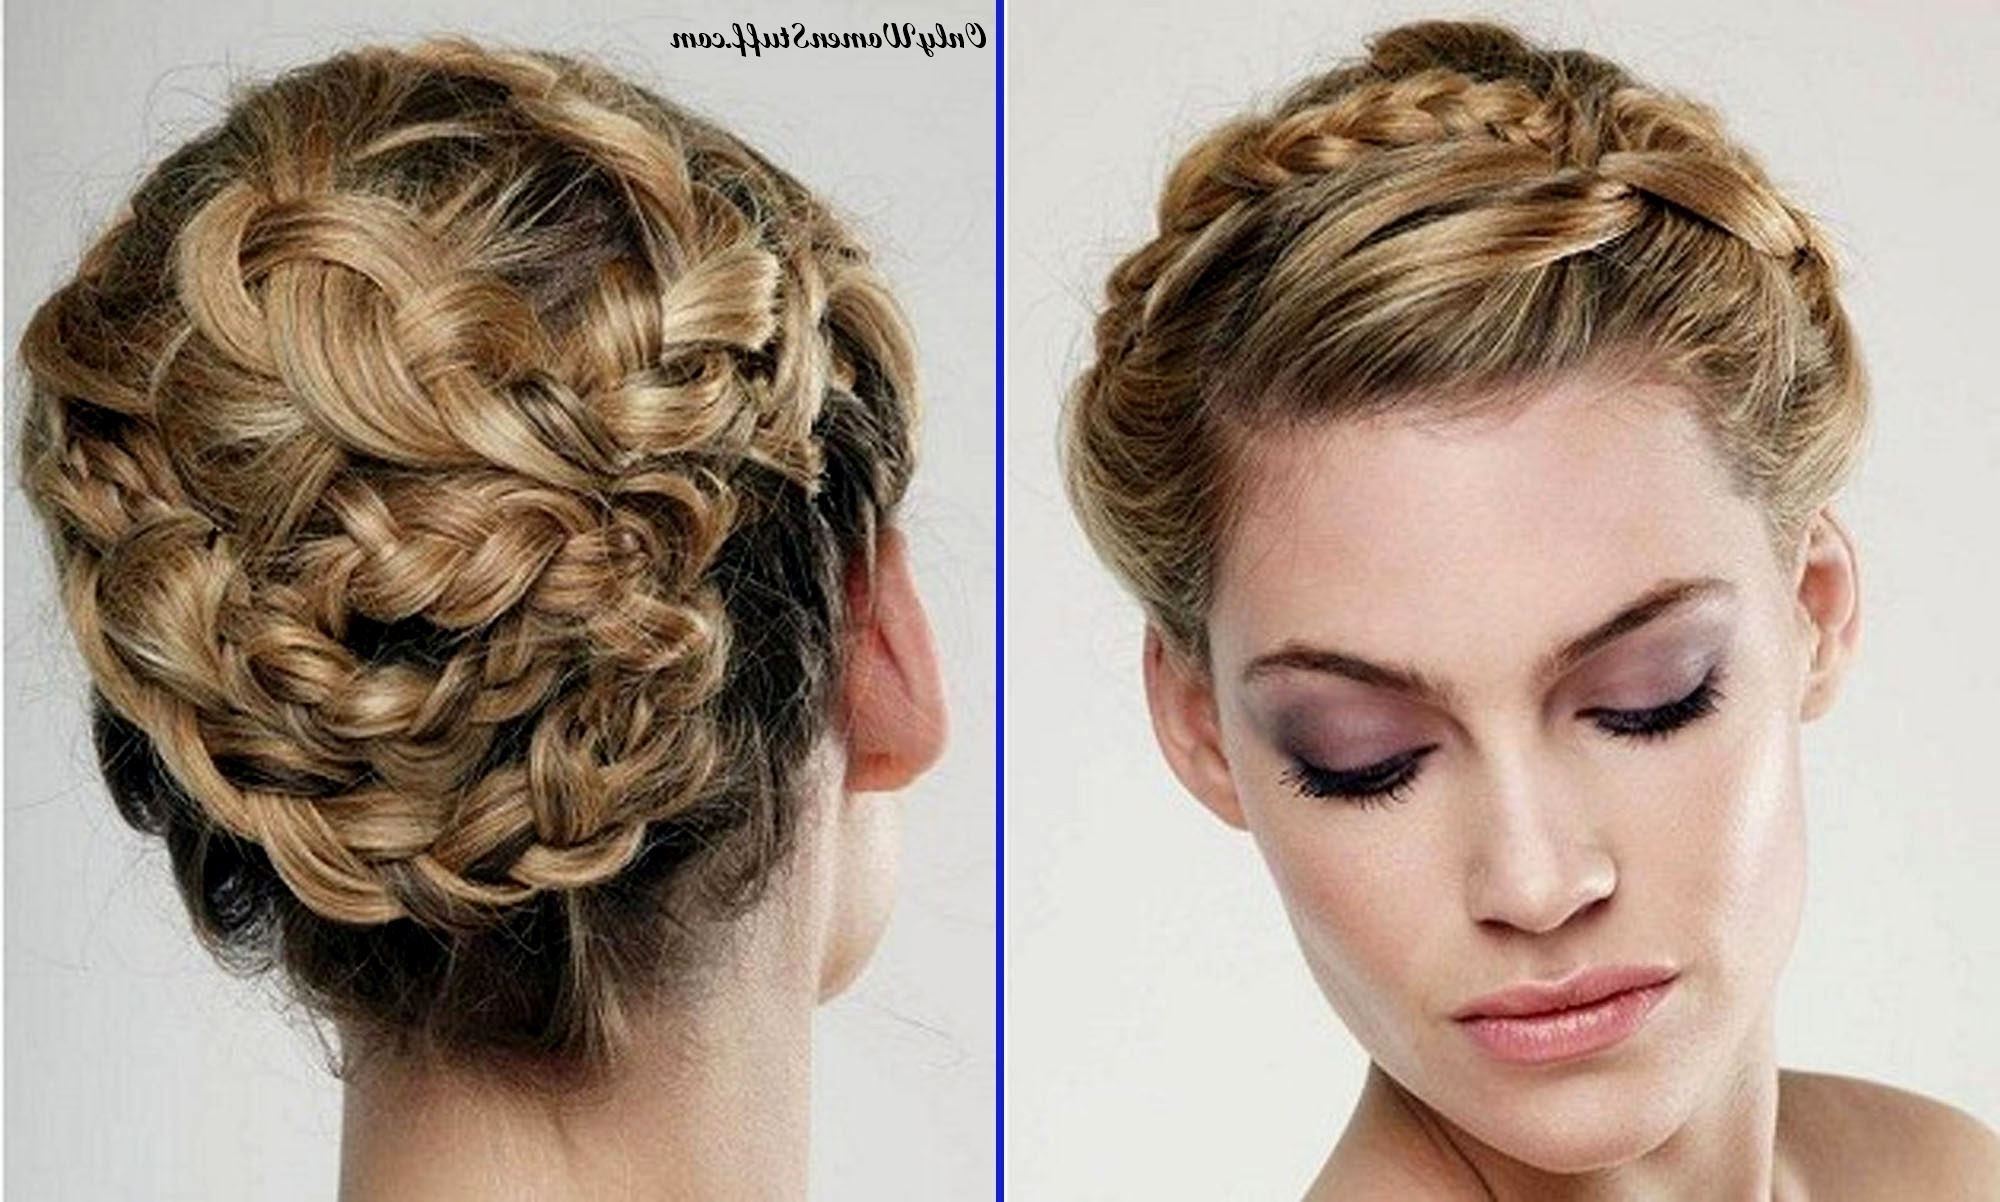 50+ Easy Prom Hairstyles & Updos Ideas (Stepstep) With Regard To Easy Hair Updo Hairstyles (View 8 of 15)